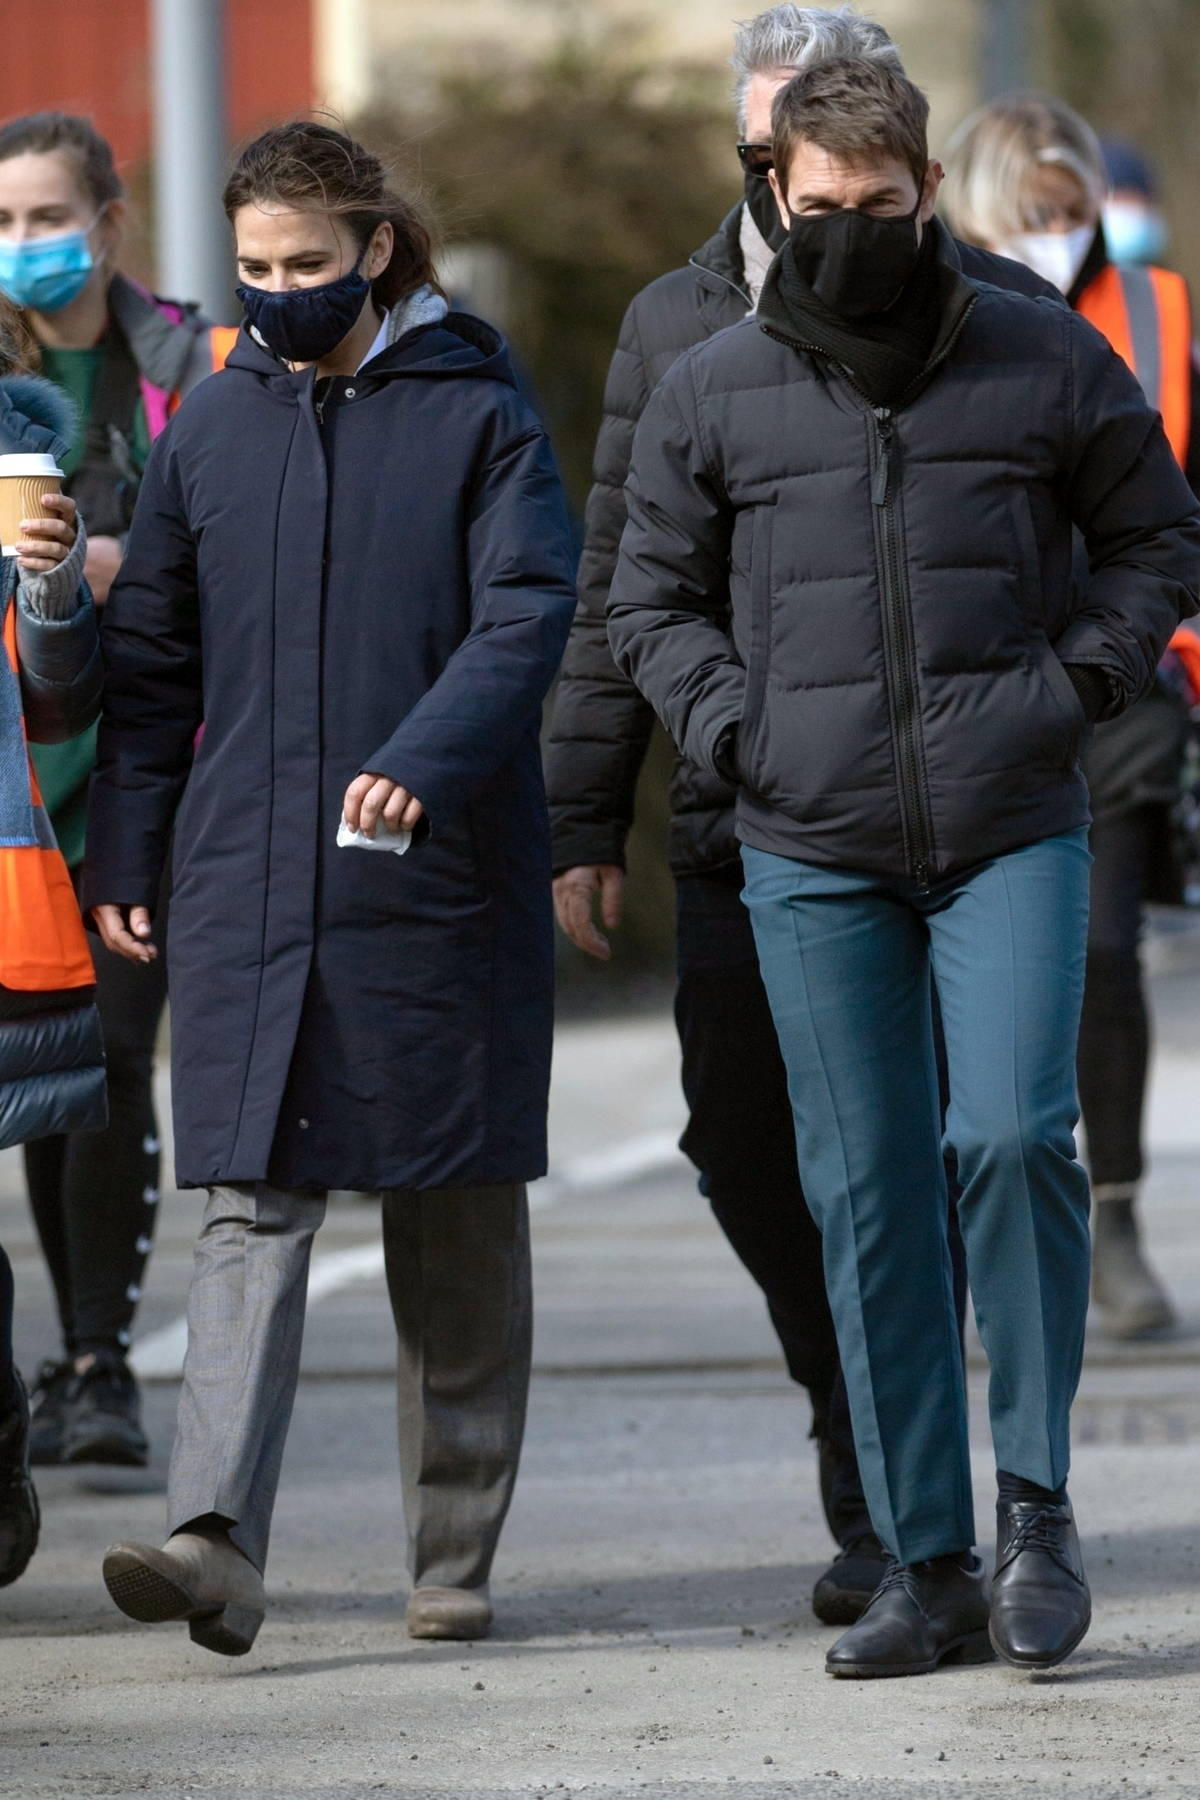 Hayley Atwell and Tom Cruise seen wearing protective face masks on set as they film 'Mission Impossible 7' in Yorkshire, UK